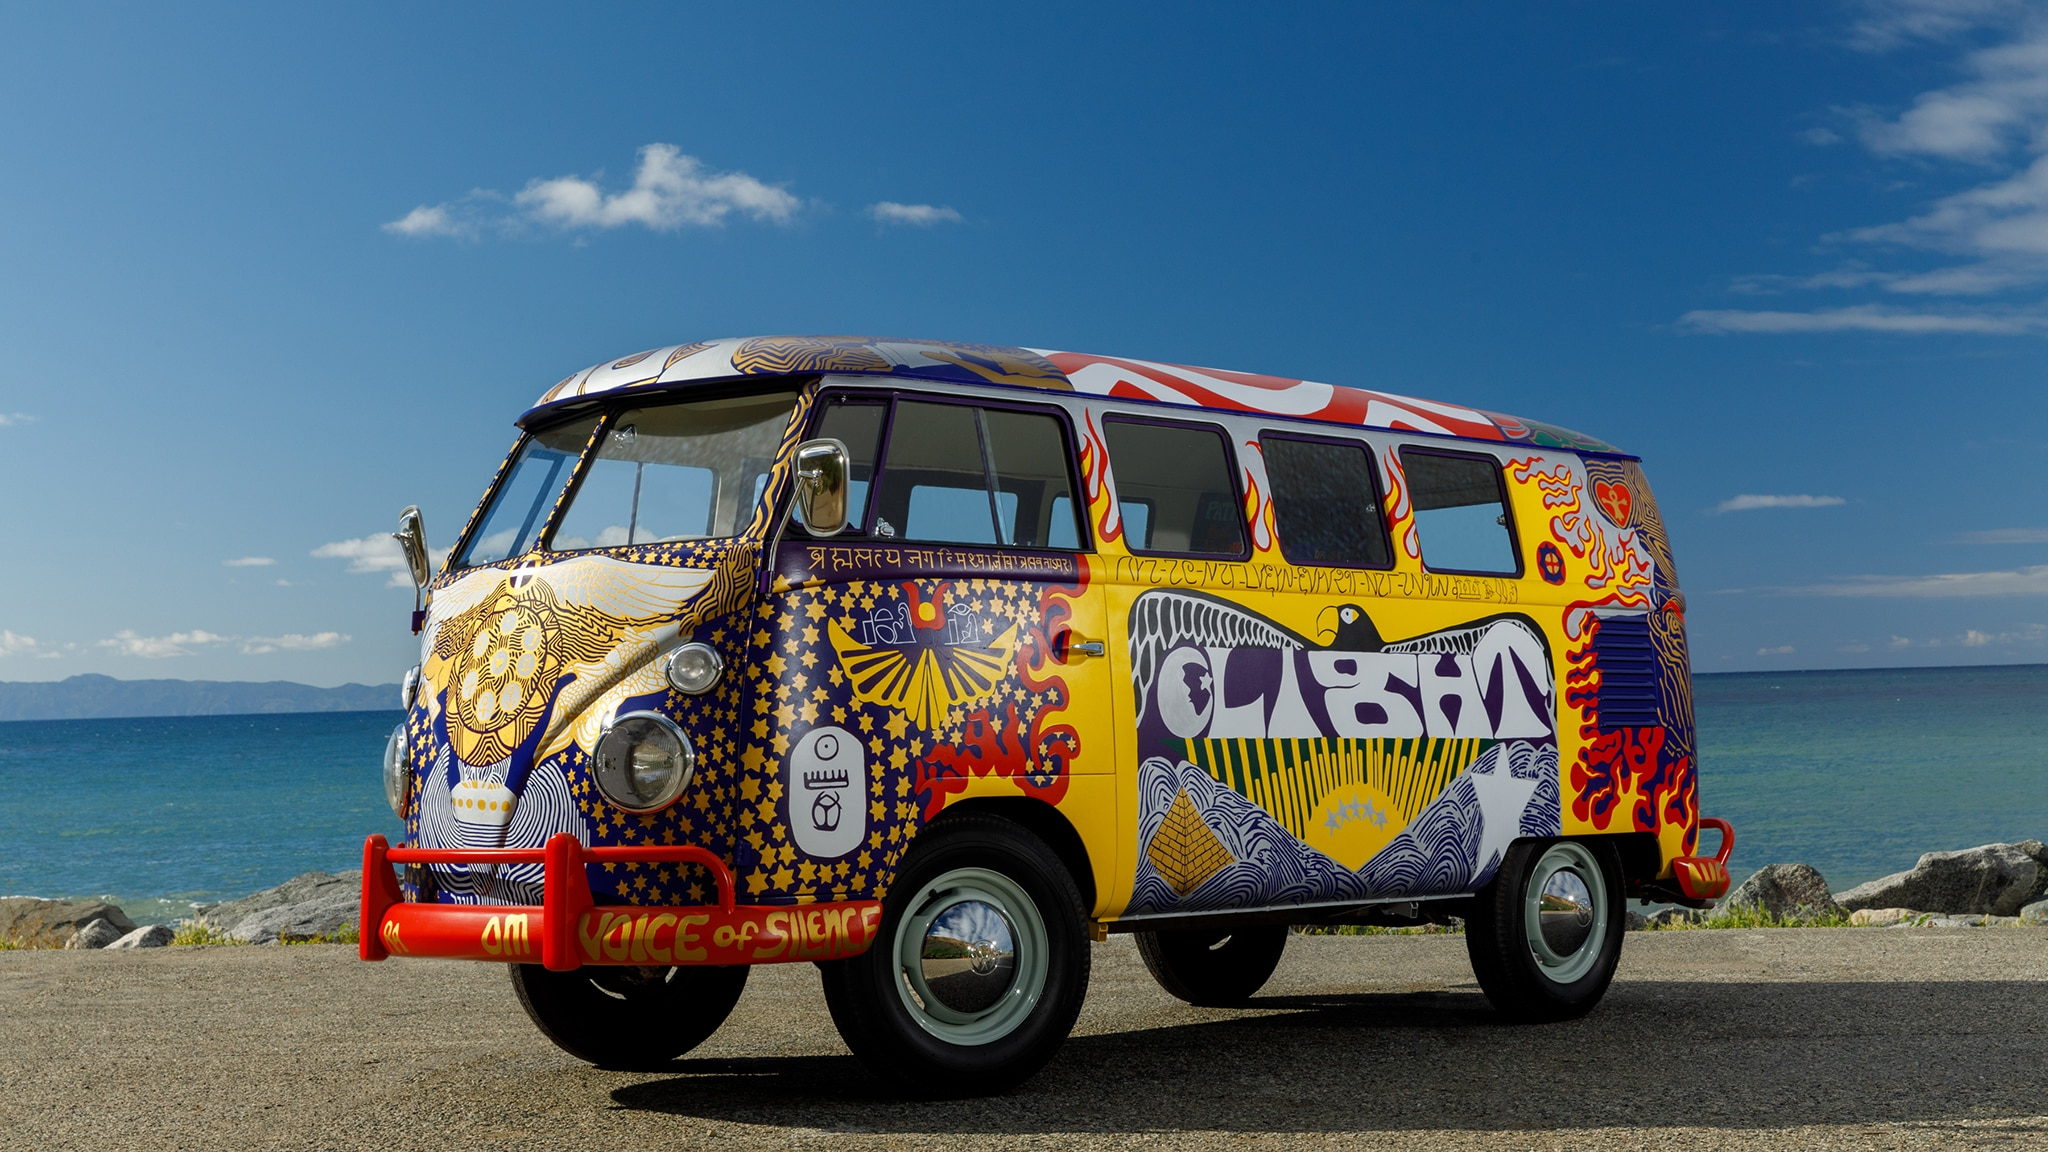 the iconic vw  u201clight u201d microbus from woodstock  road